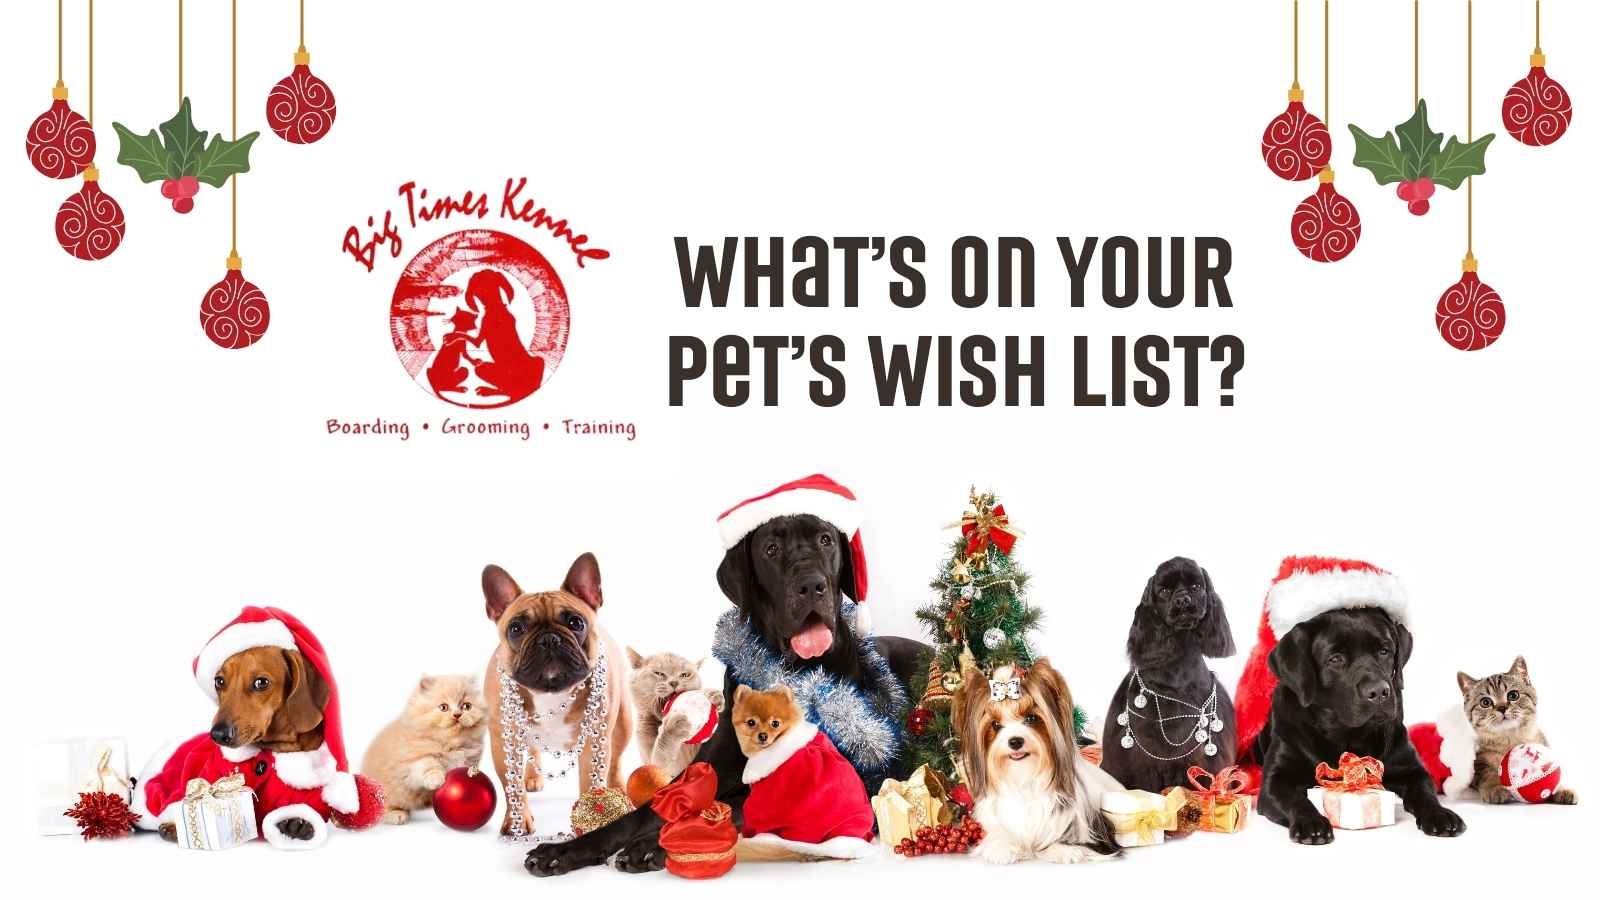 What's on Your Pets Wish List